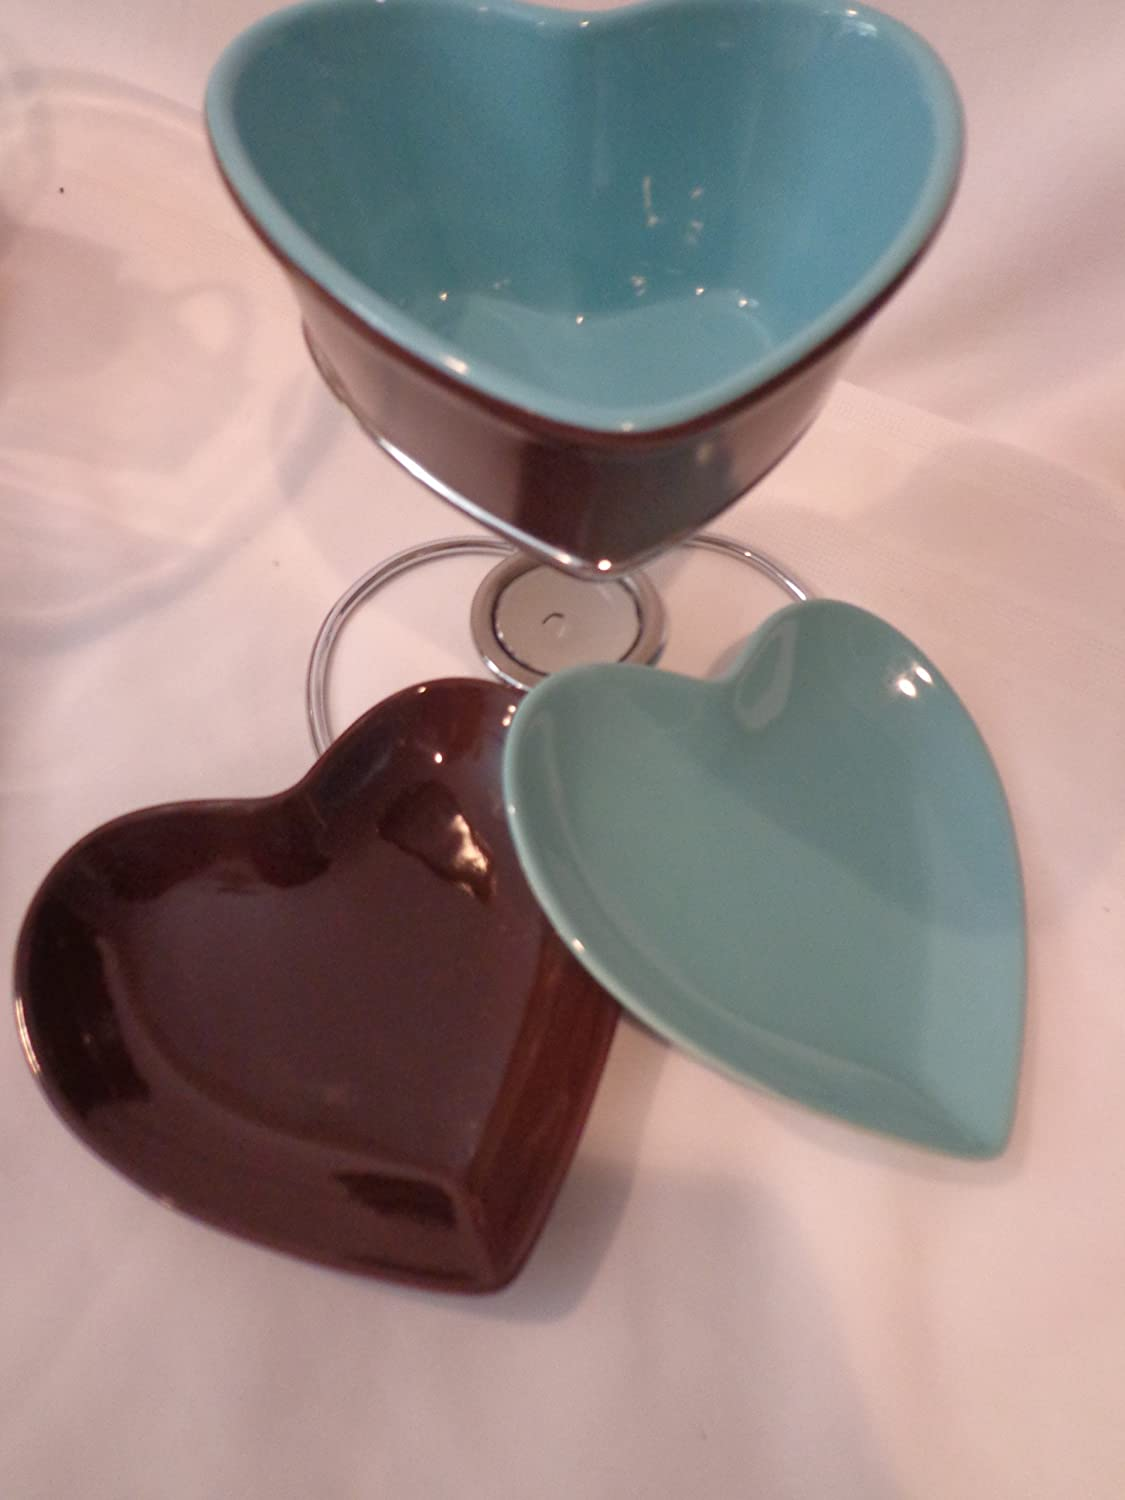 Amazon.com: Dove Chocolate Discoveries Heart-Shaped Fondue Set For ...